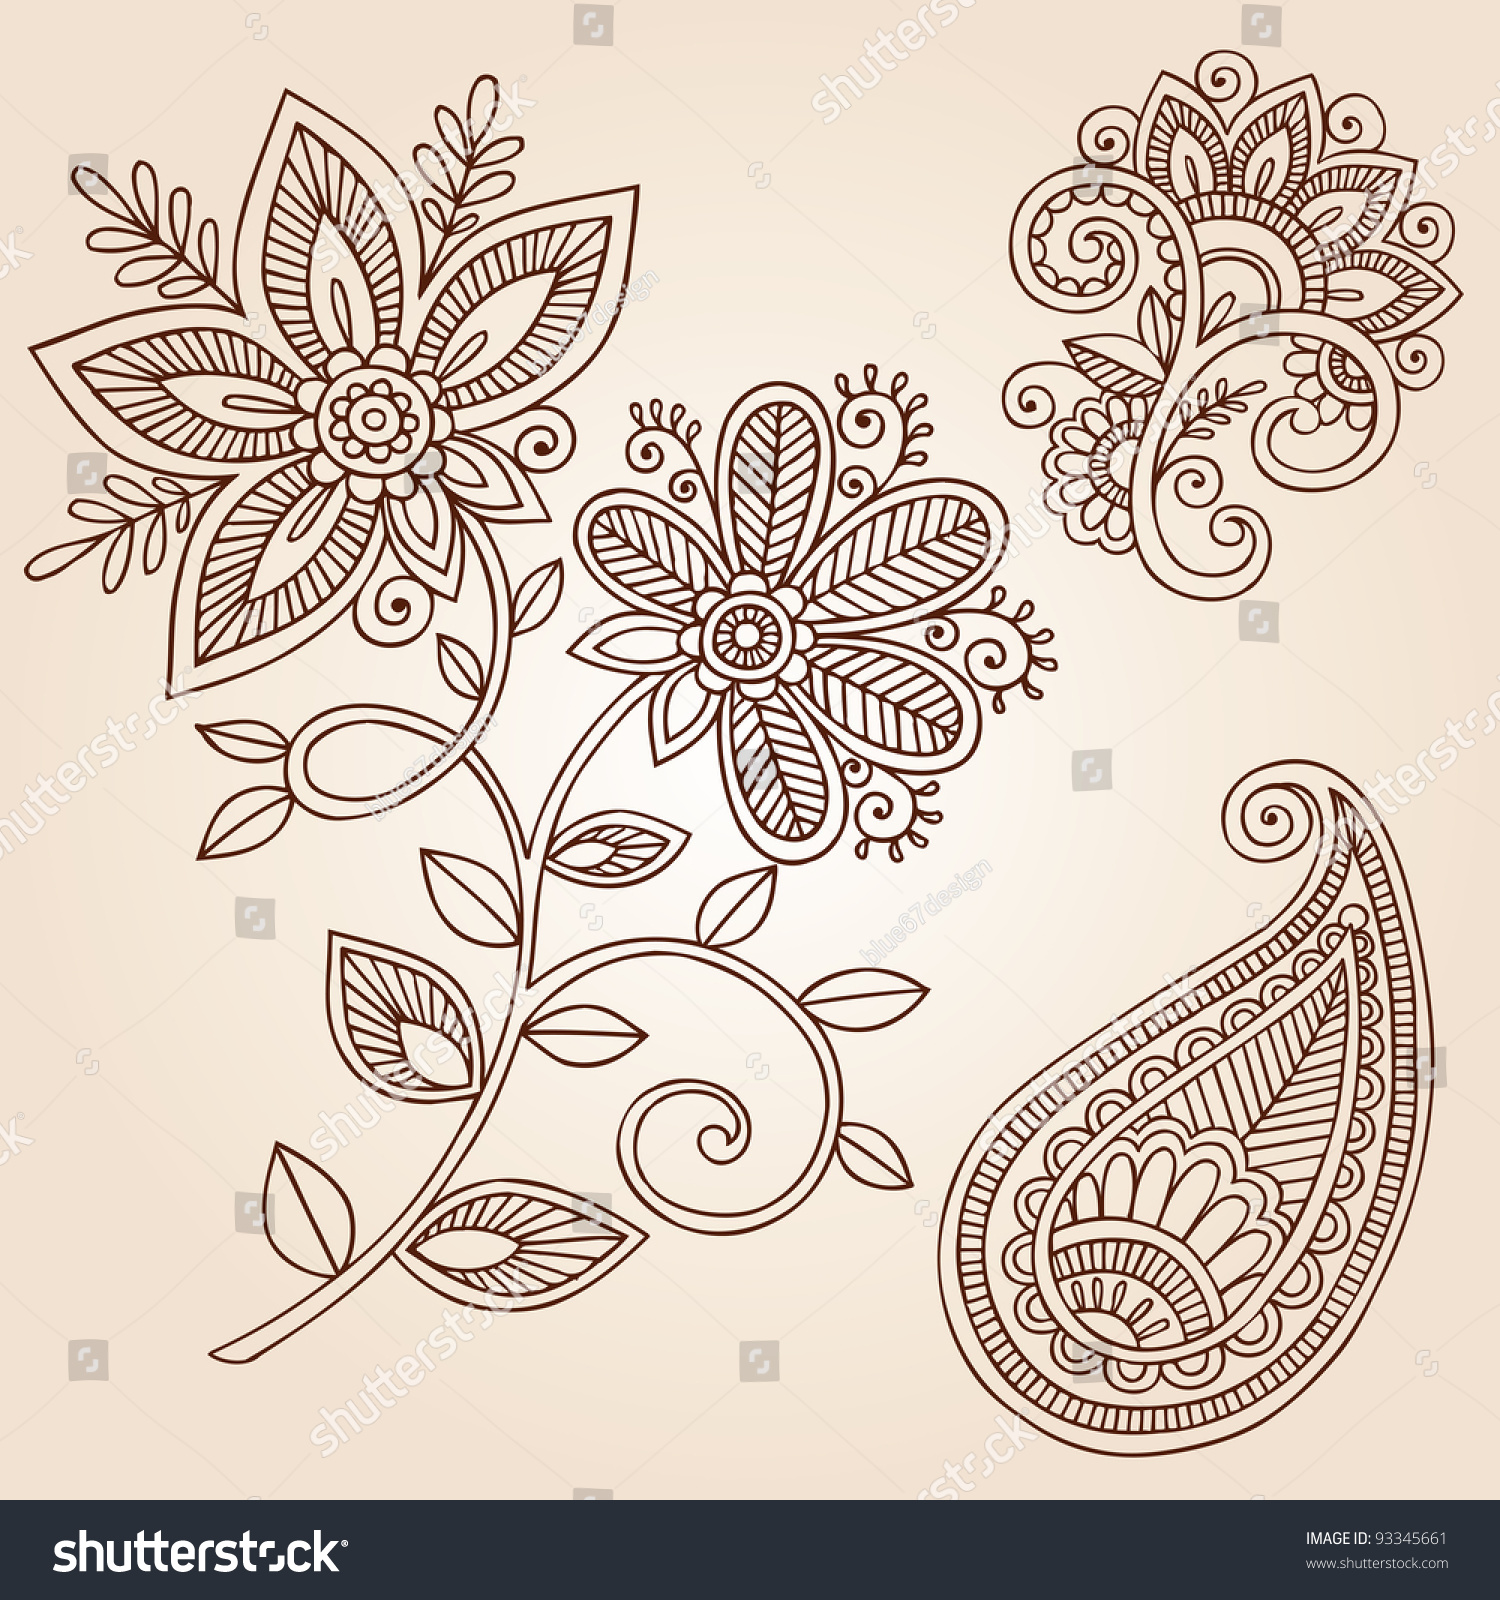 Henna Mehndi Flower Doodles Abstract Floral Stock Vector